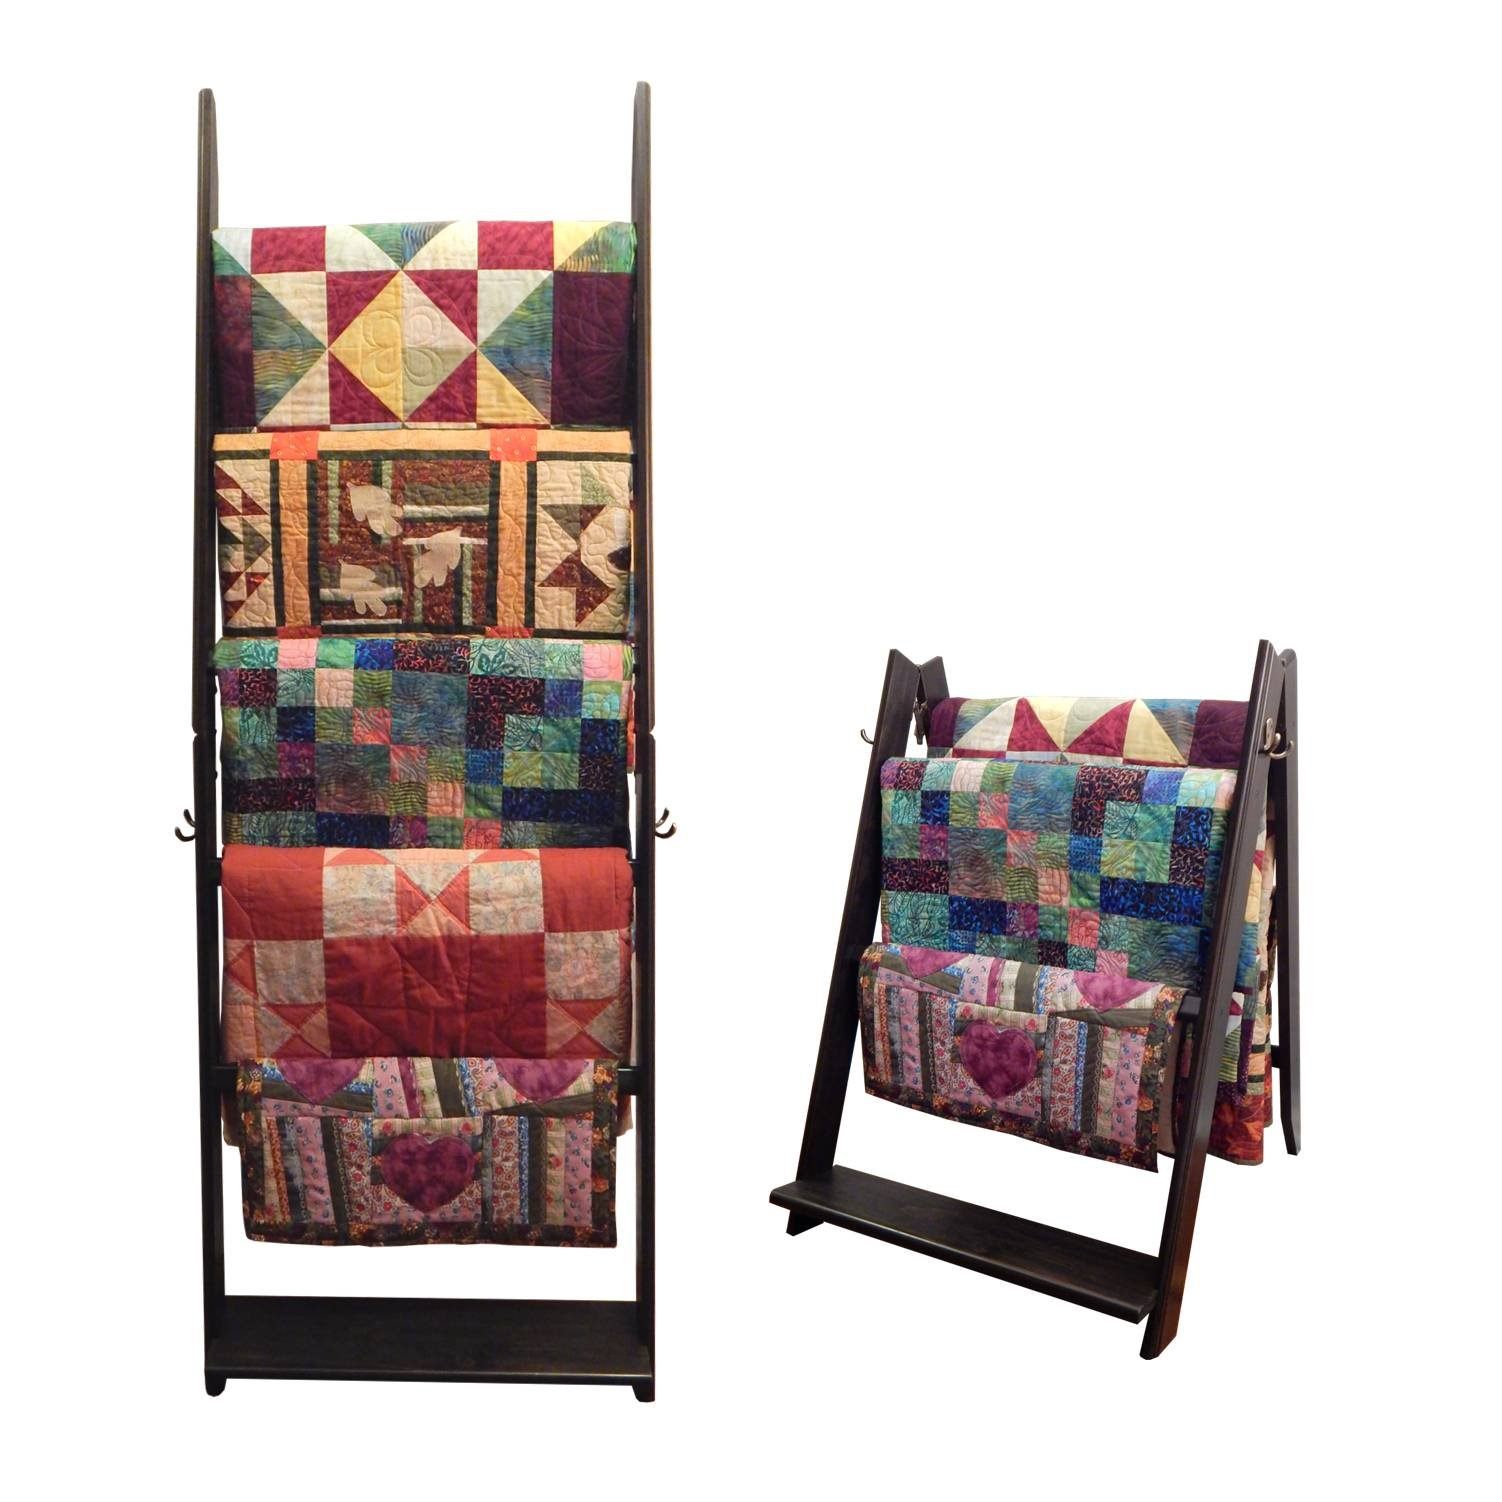 The LadderRack 2-in-1 Quilt Display Rack (5 Rung/24'' Model/Weathered Black) by Built by Briick Quilting